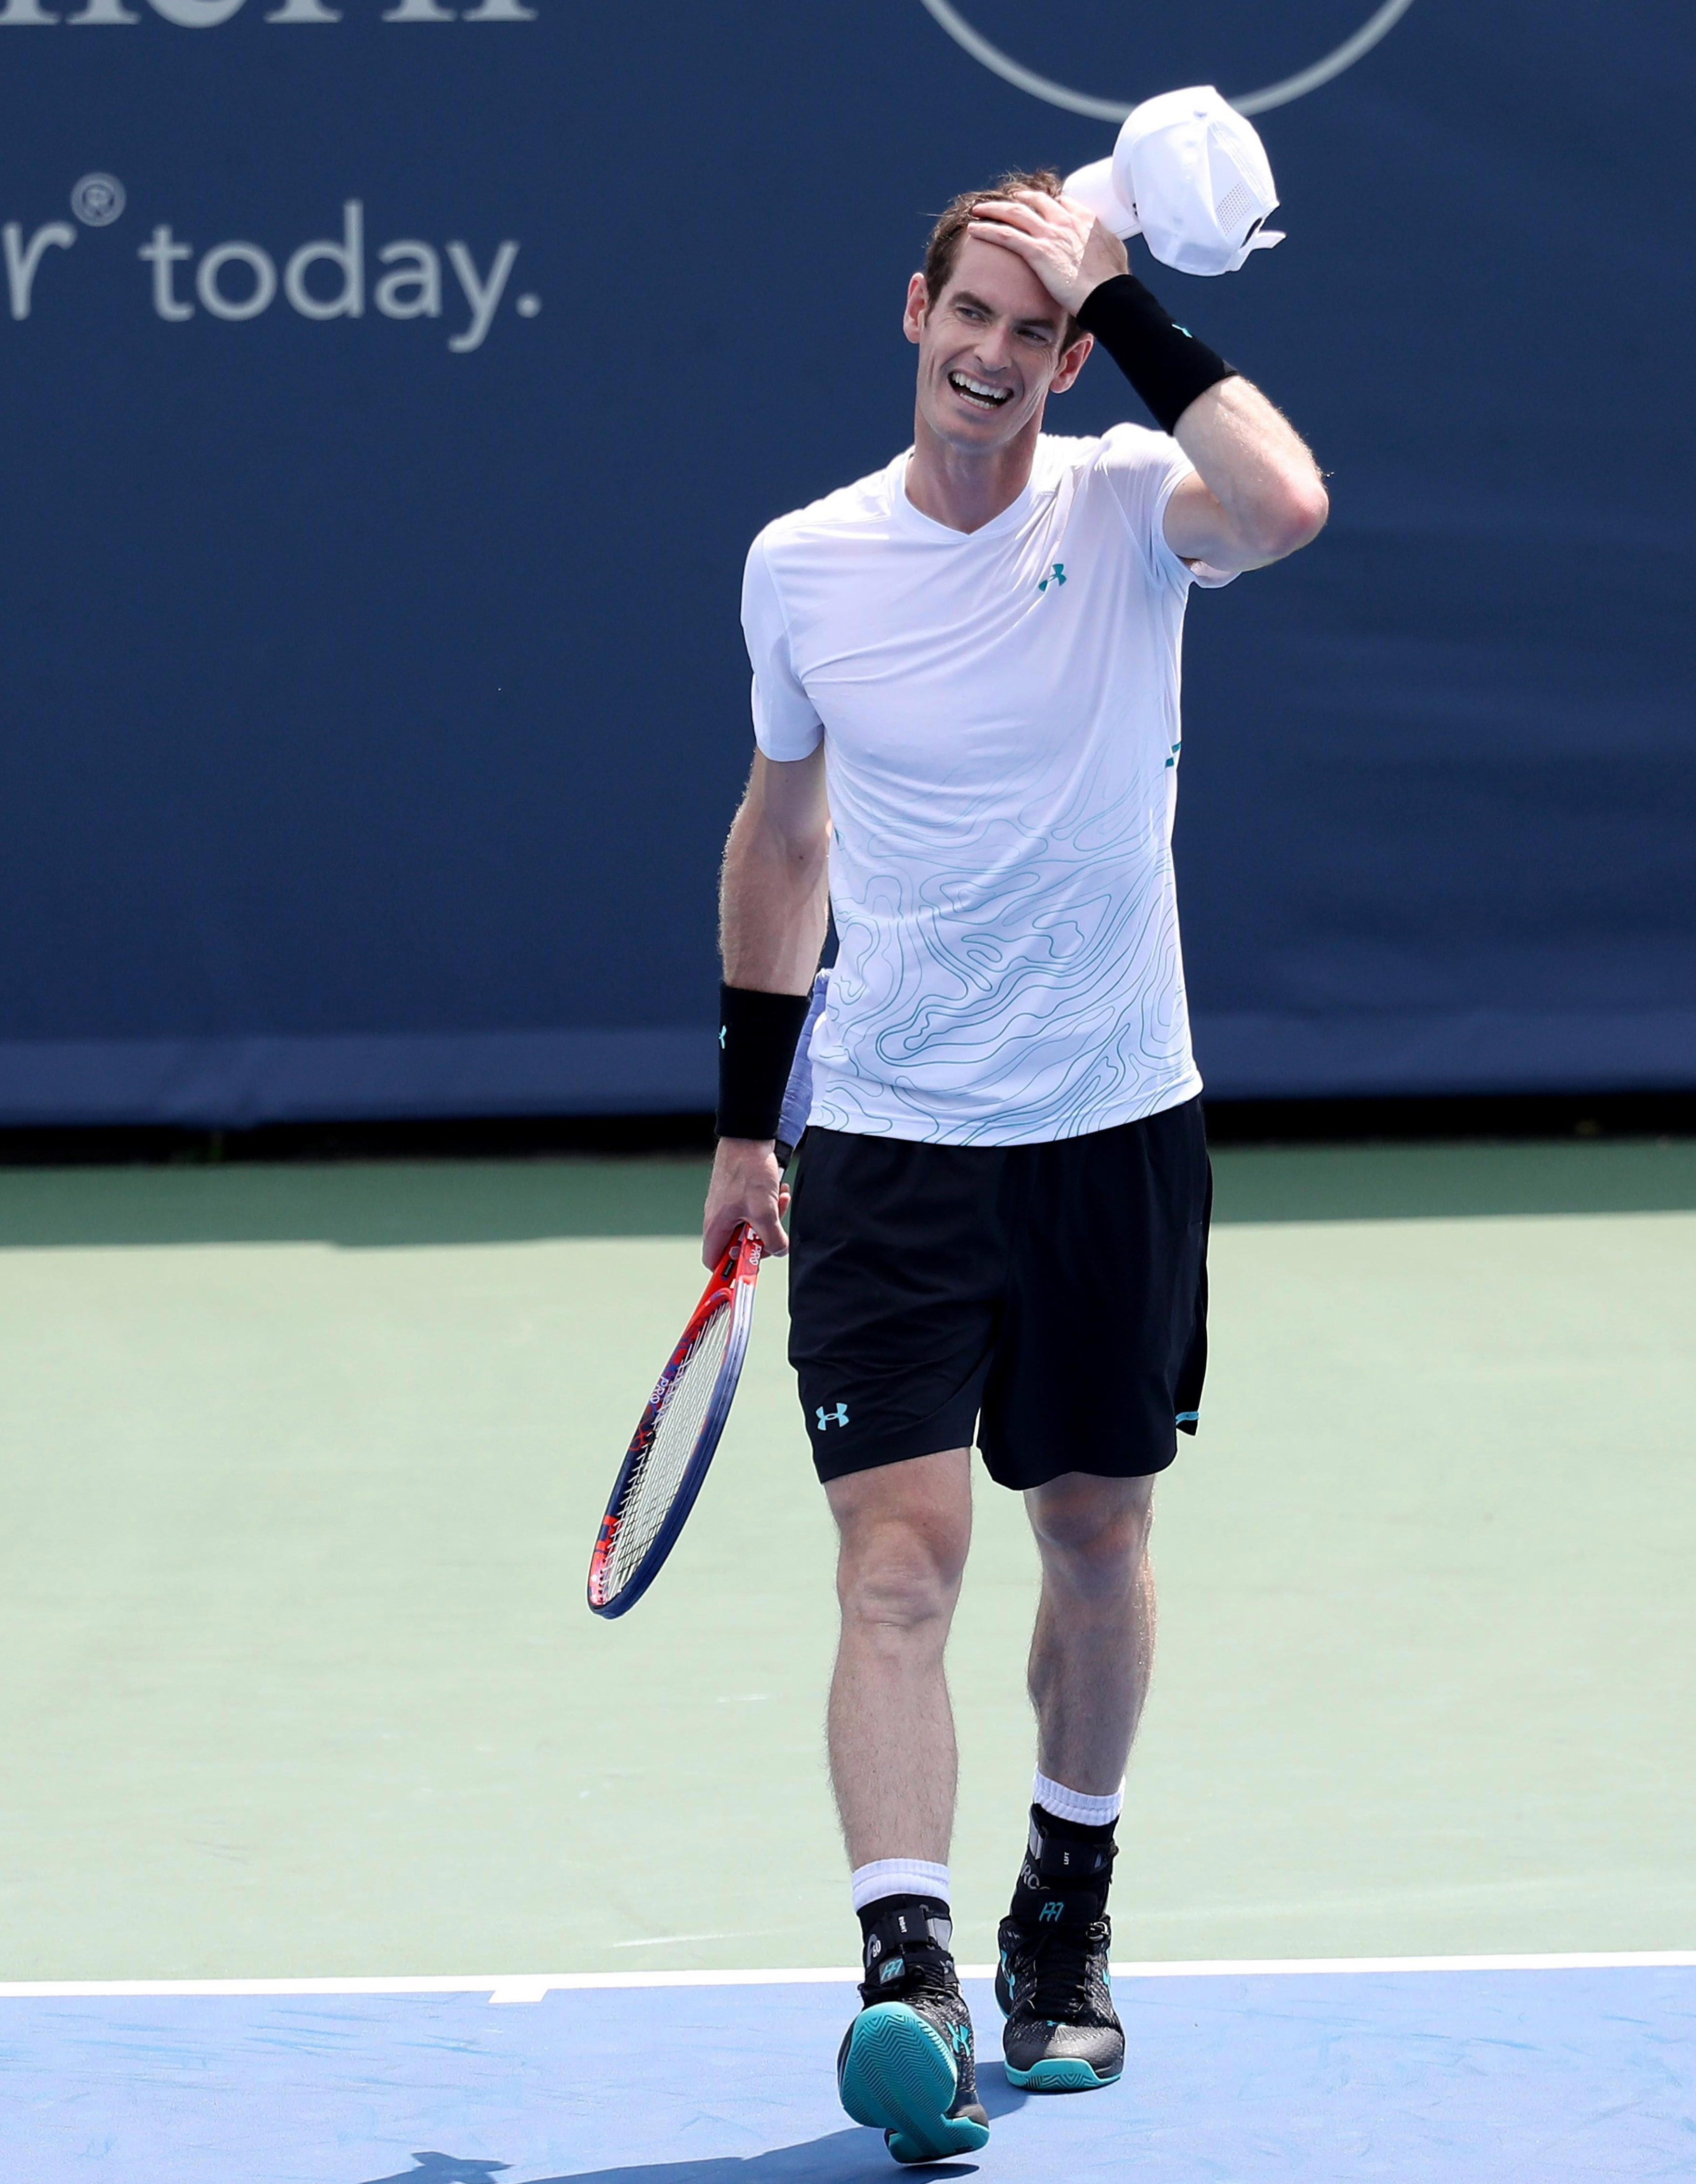 Andy Murray reacts to his latest setback as he battles to return to the top